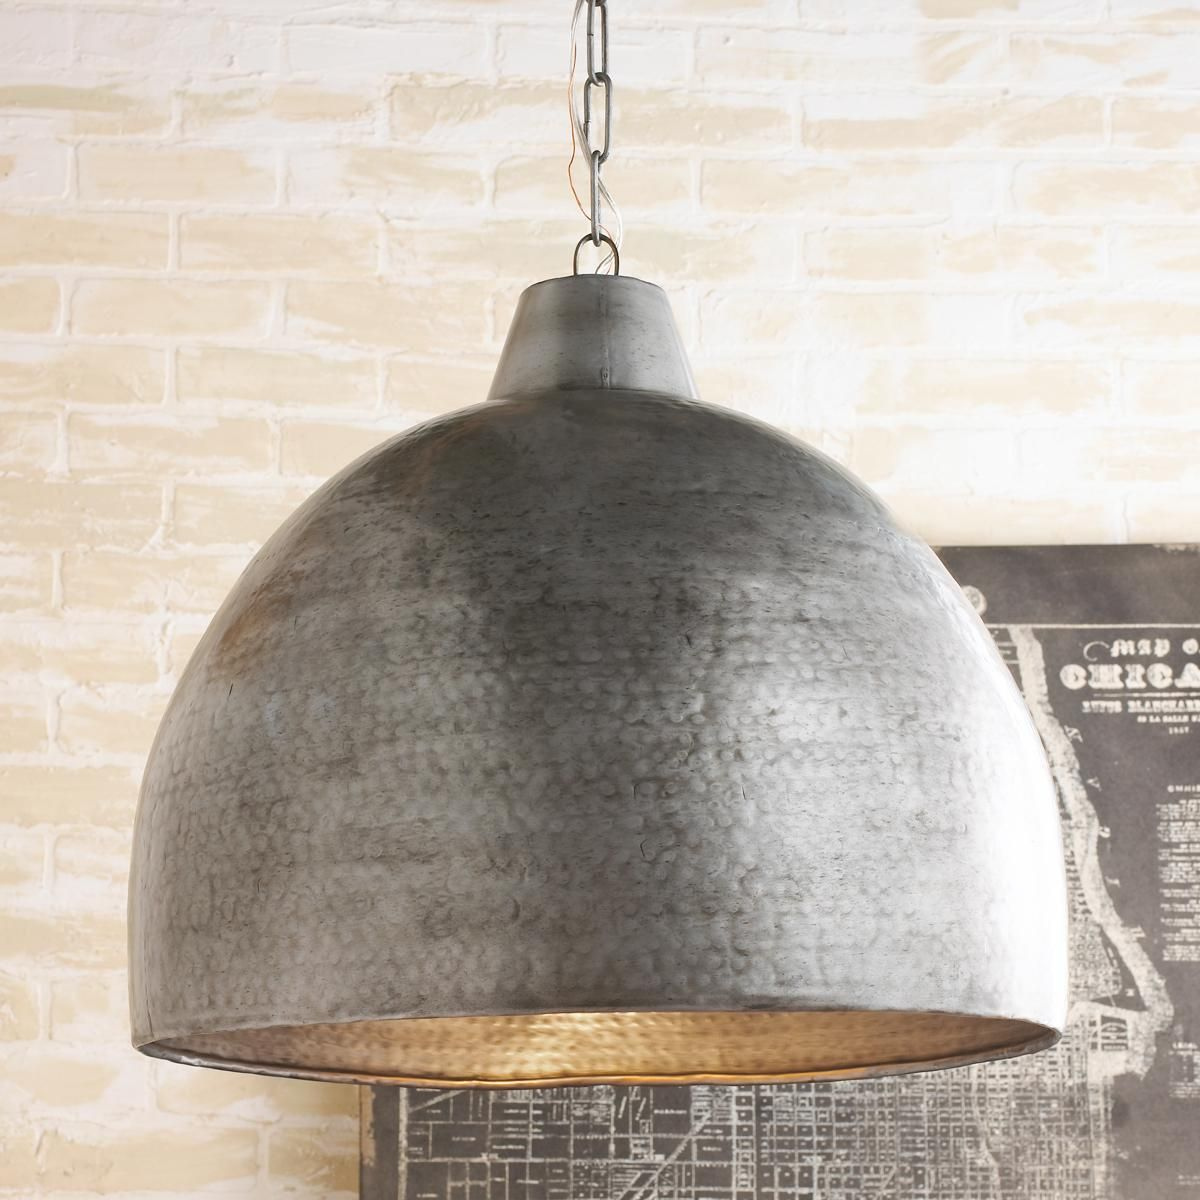 Hammered Steel Oversized Dome Pendant West Town Single Family